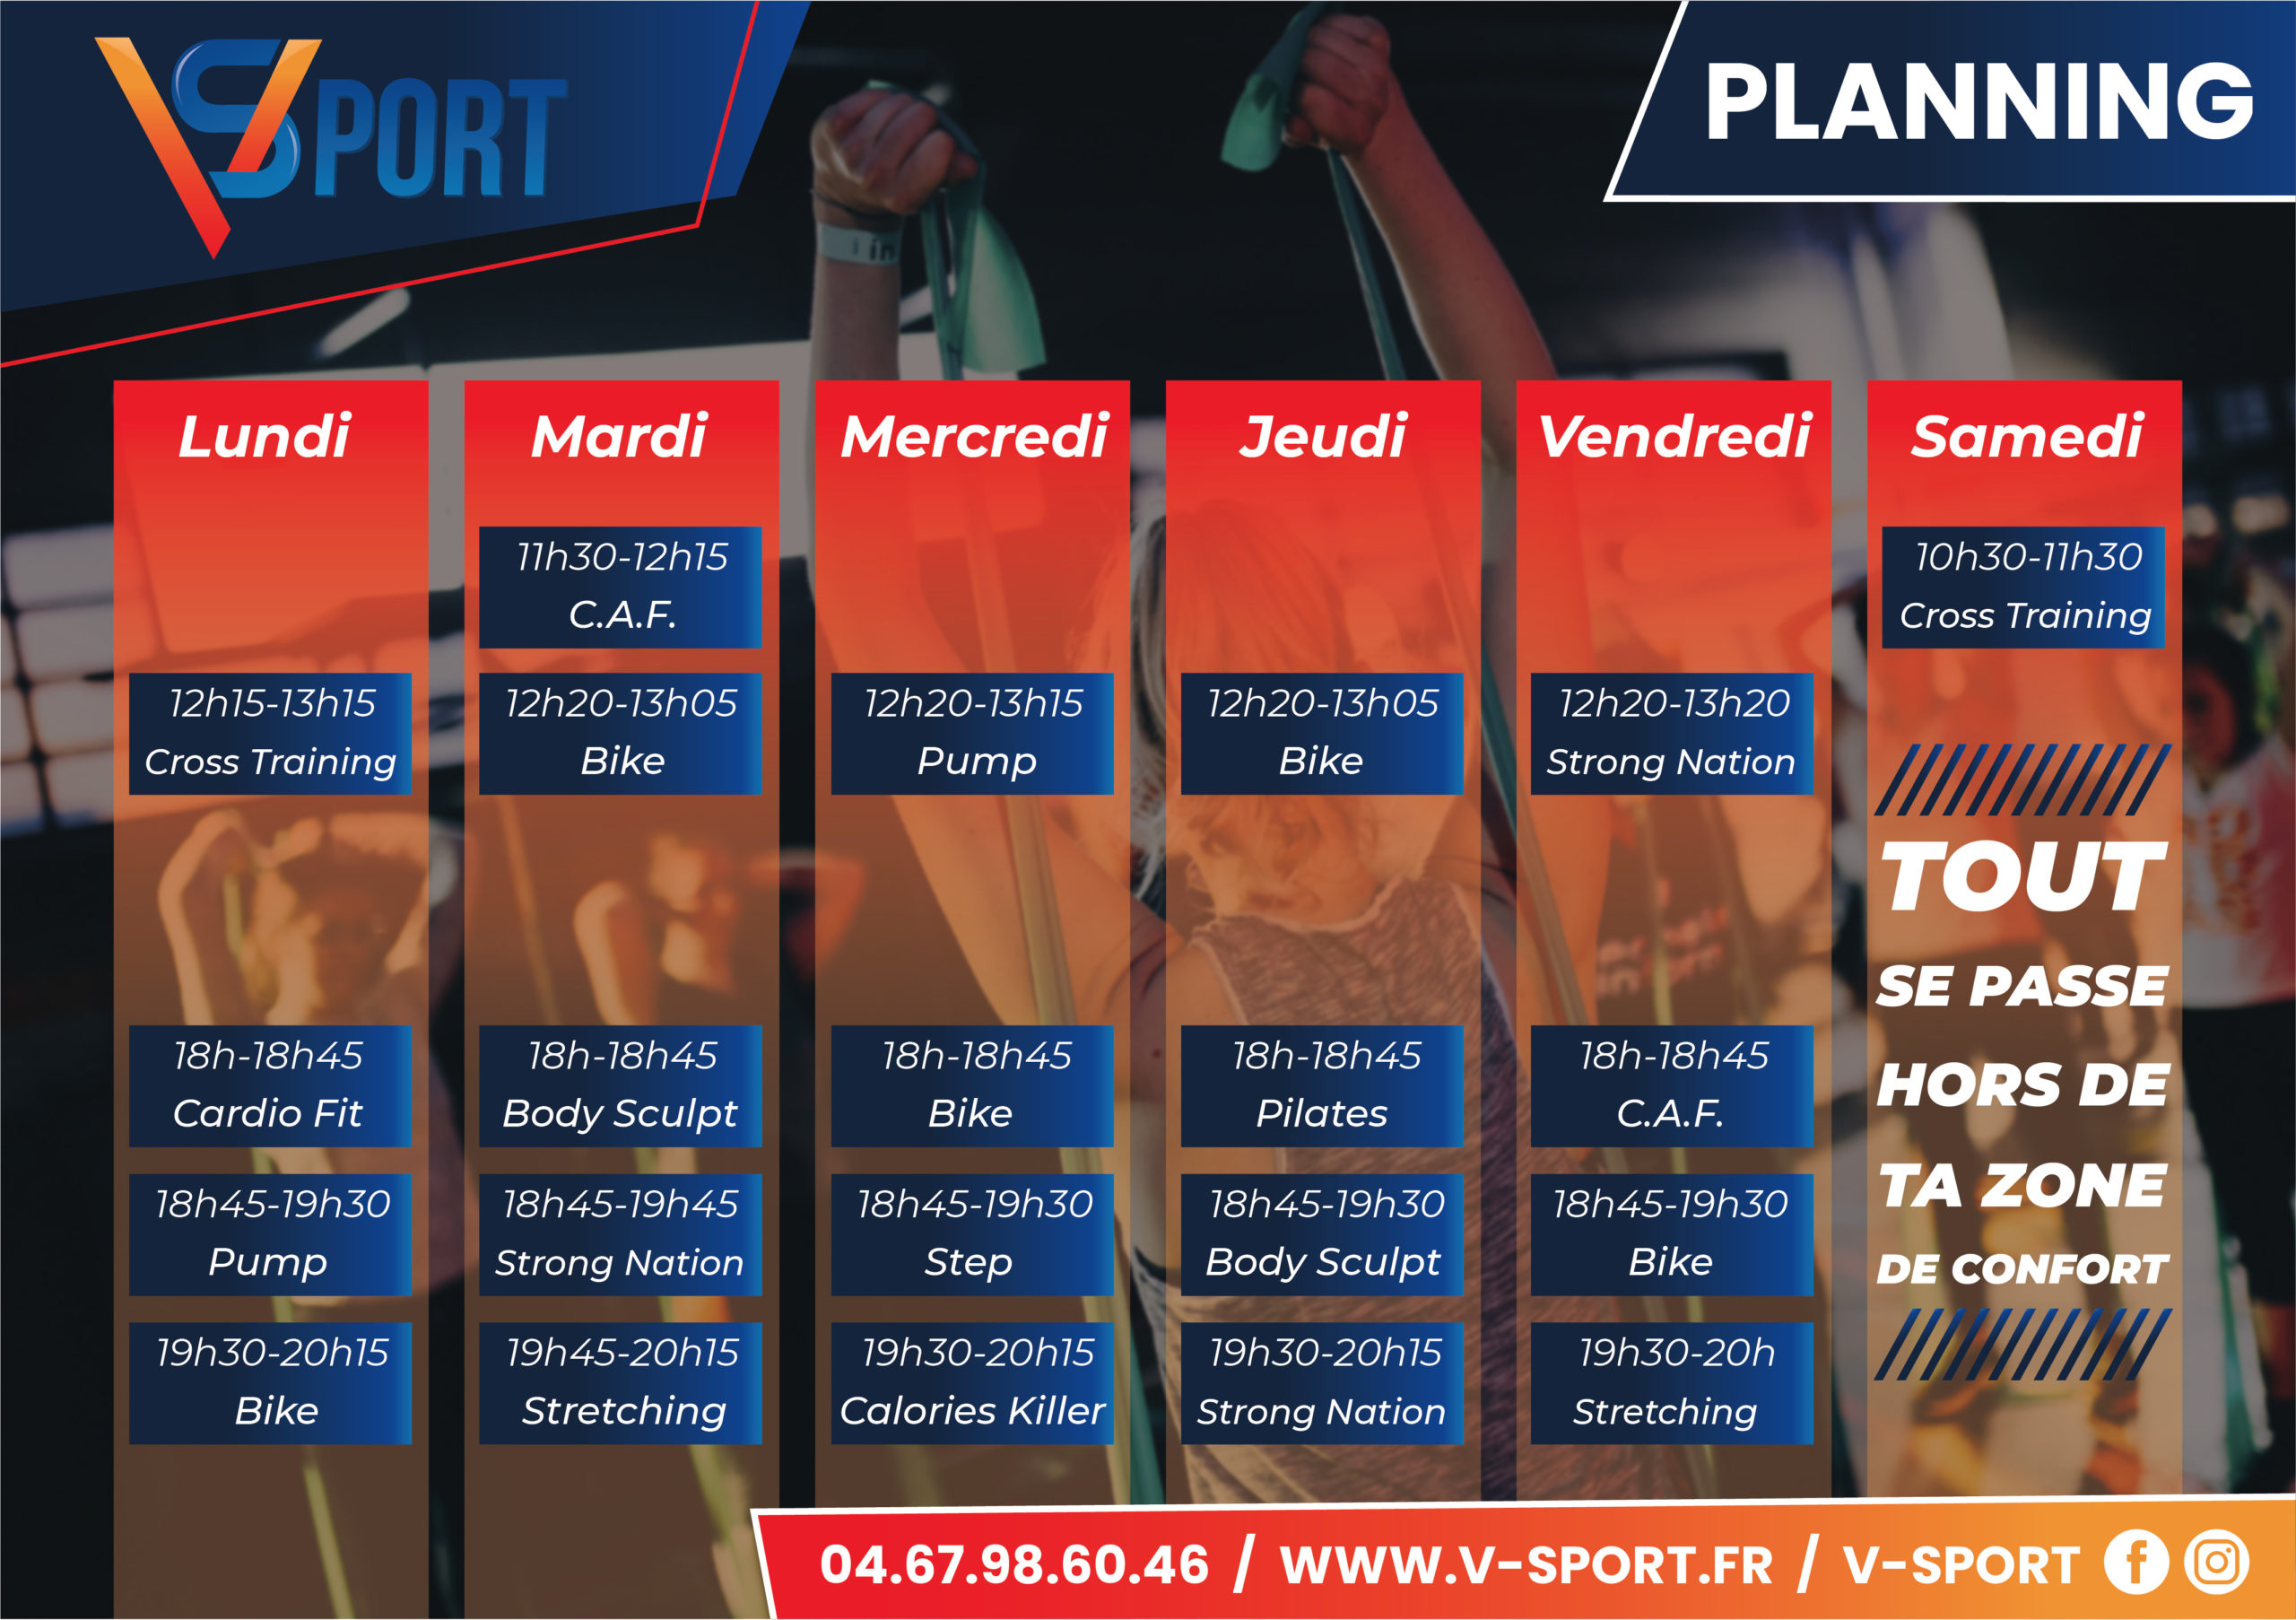 VSPORT Béziers planning cours collectifs, fitness, sport